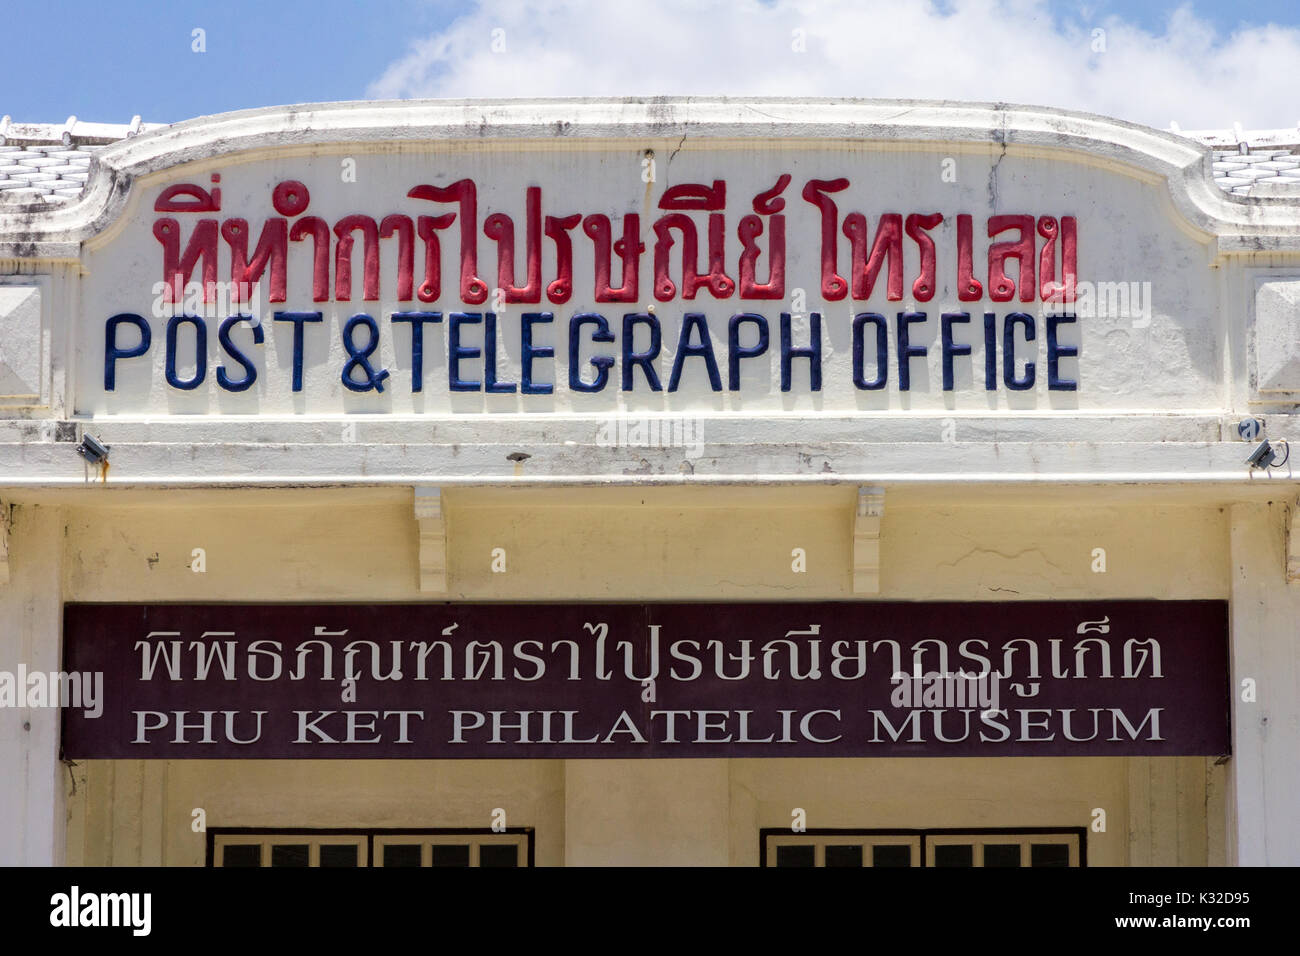 The Old Telegraph and Post Office now the Philatelic Museum, Phuket, Town, Thailand - Stock Image